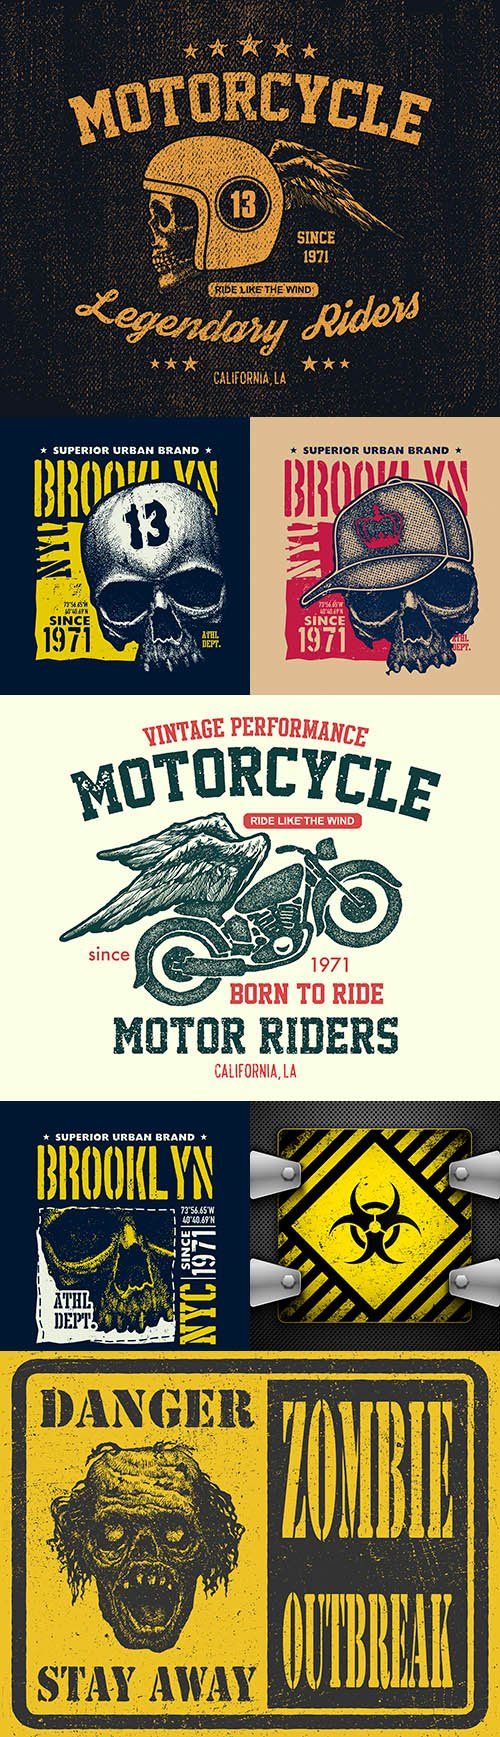 Vintage illustration motorcycle and urban printing house